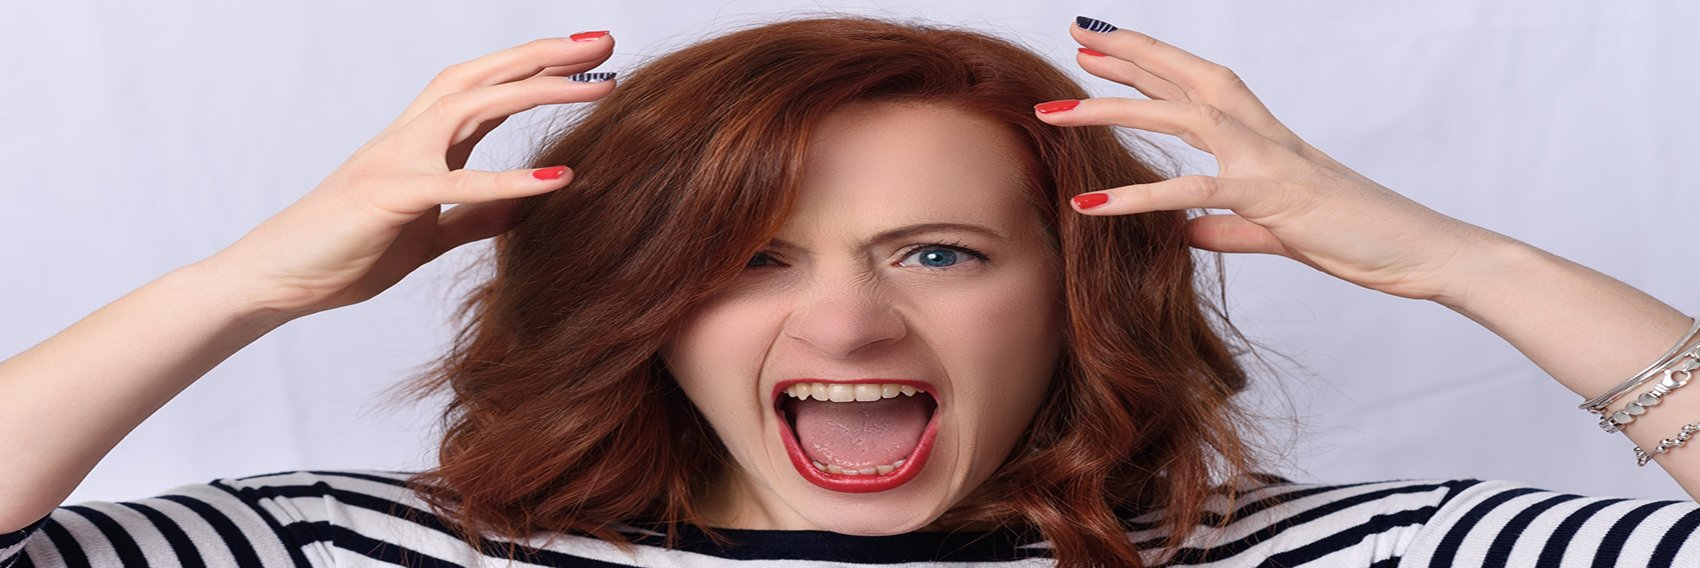 Person Who Needs Anger Management Feels Stressed Out